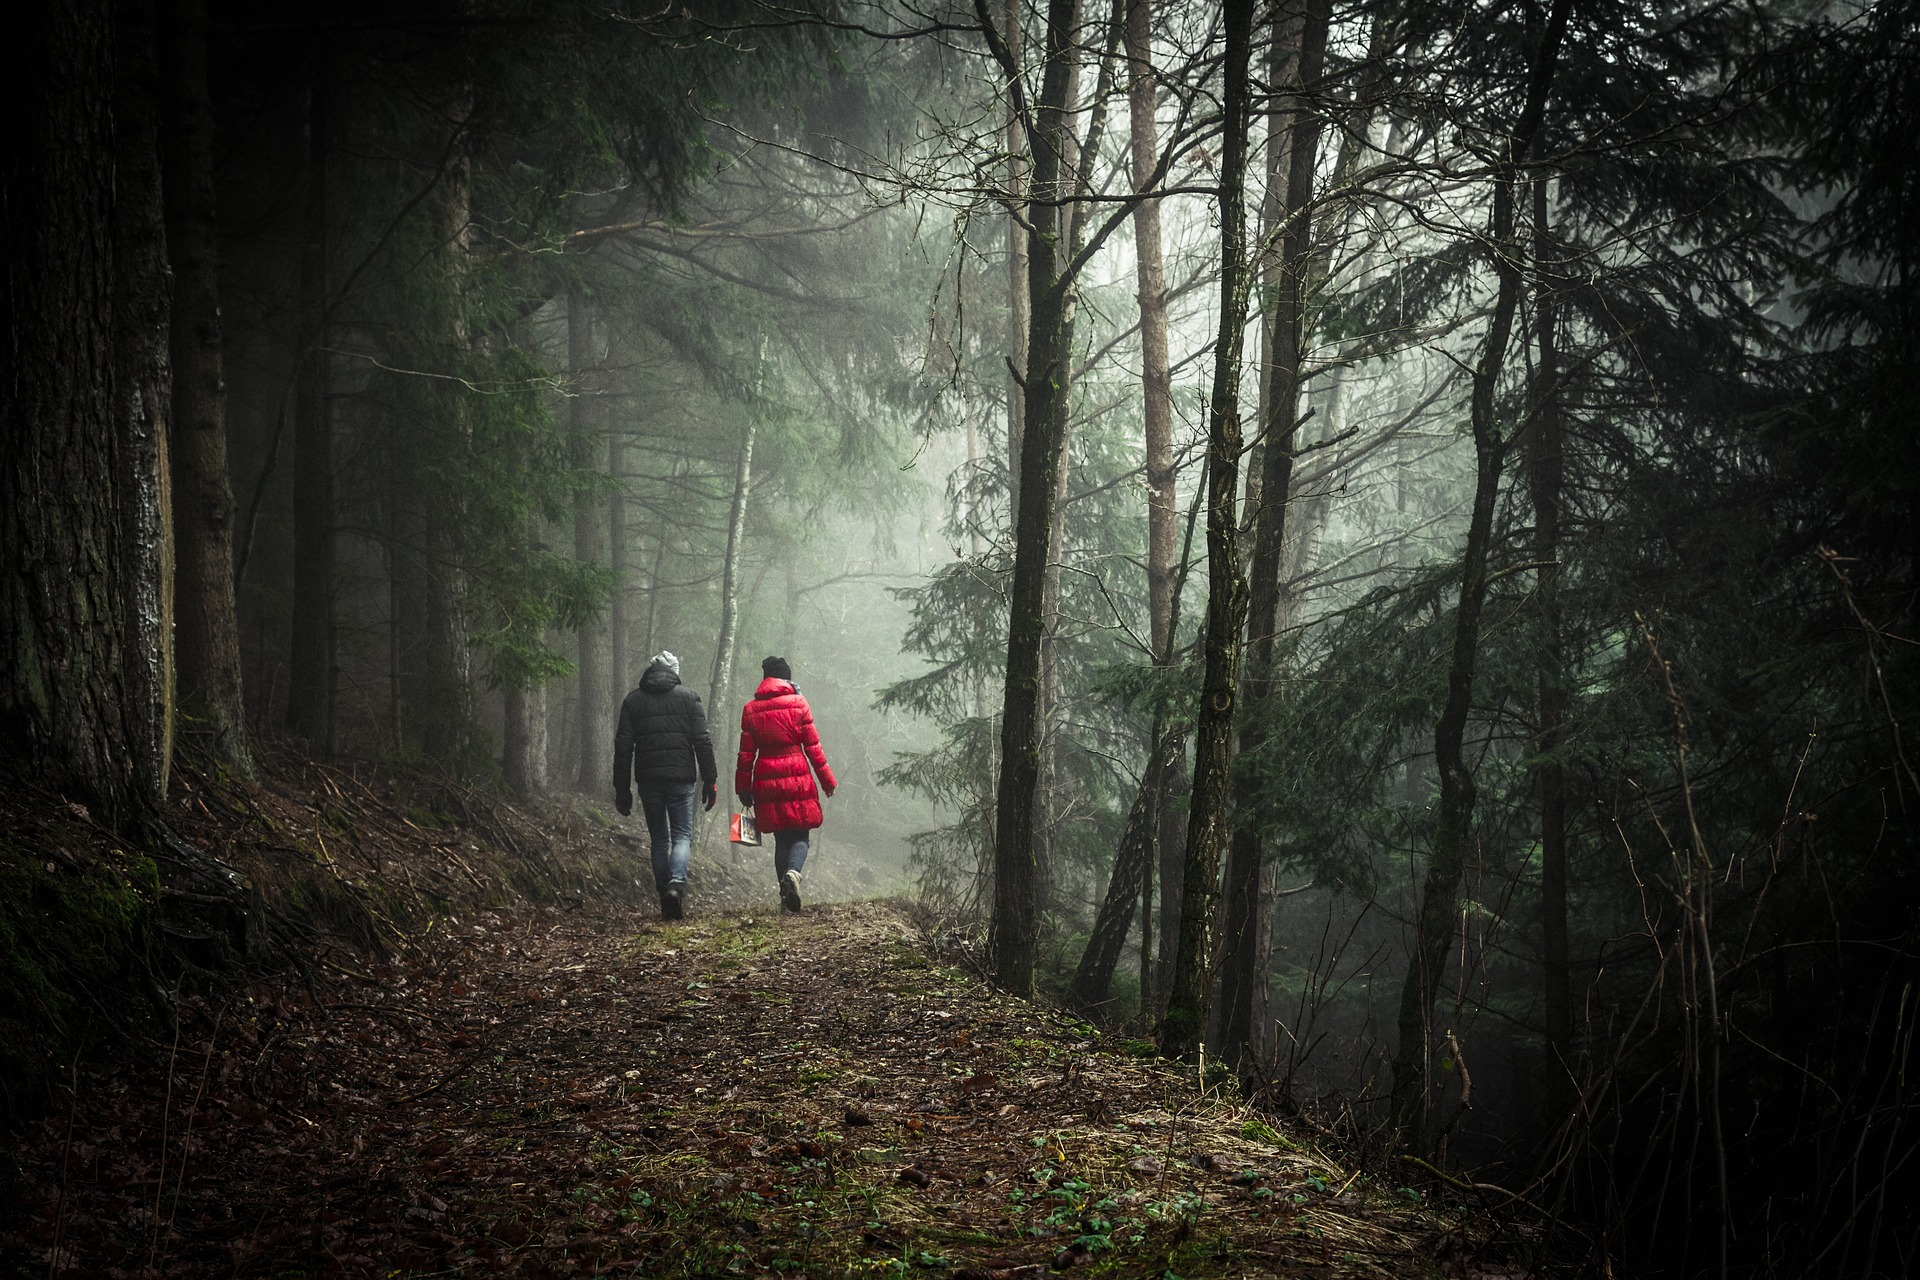 Go for a walk in nature with a friend when you are feeling bored and/or anxious.